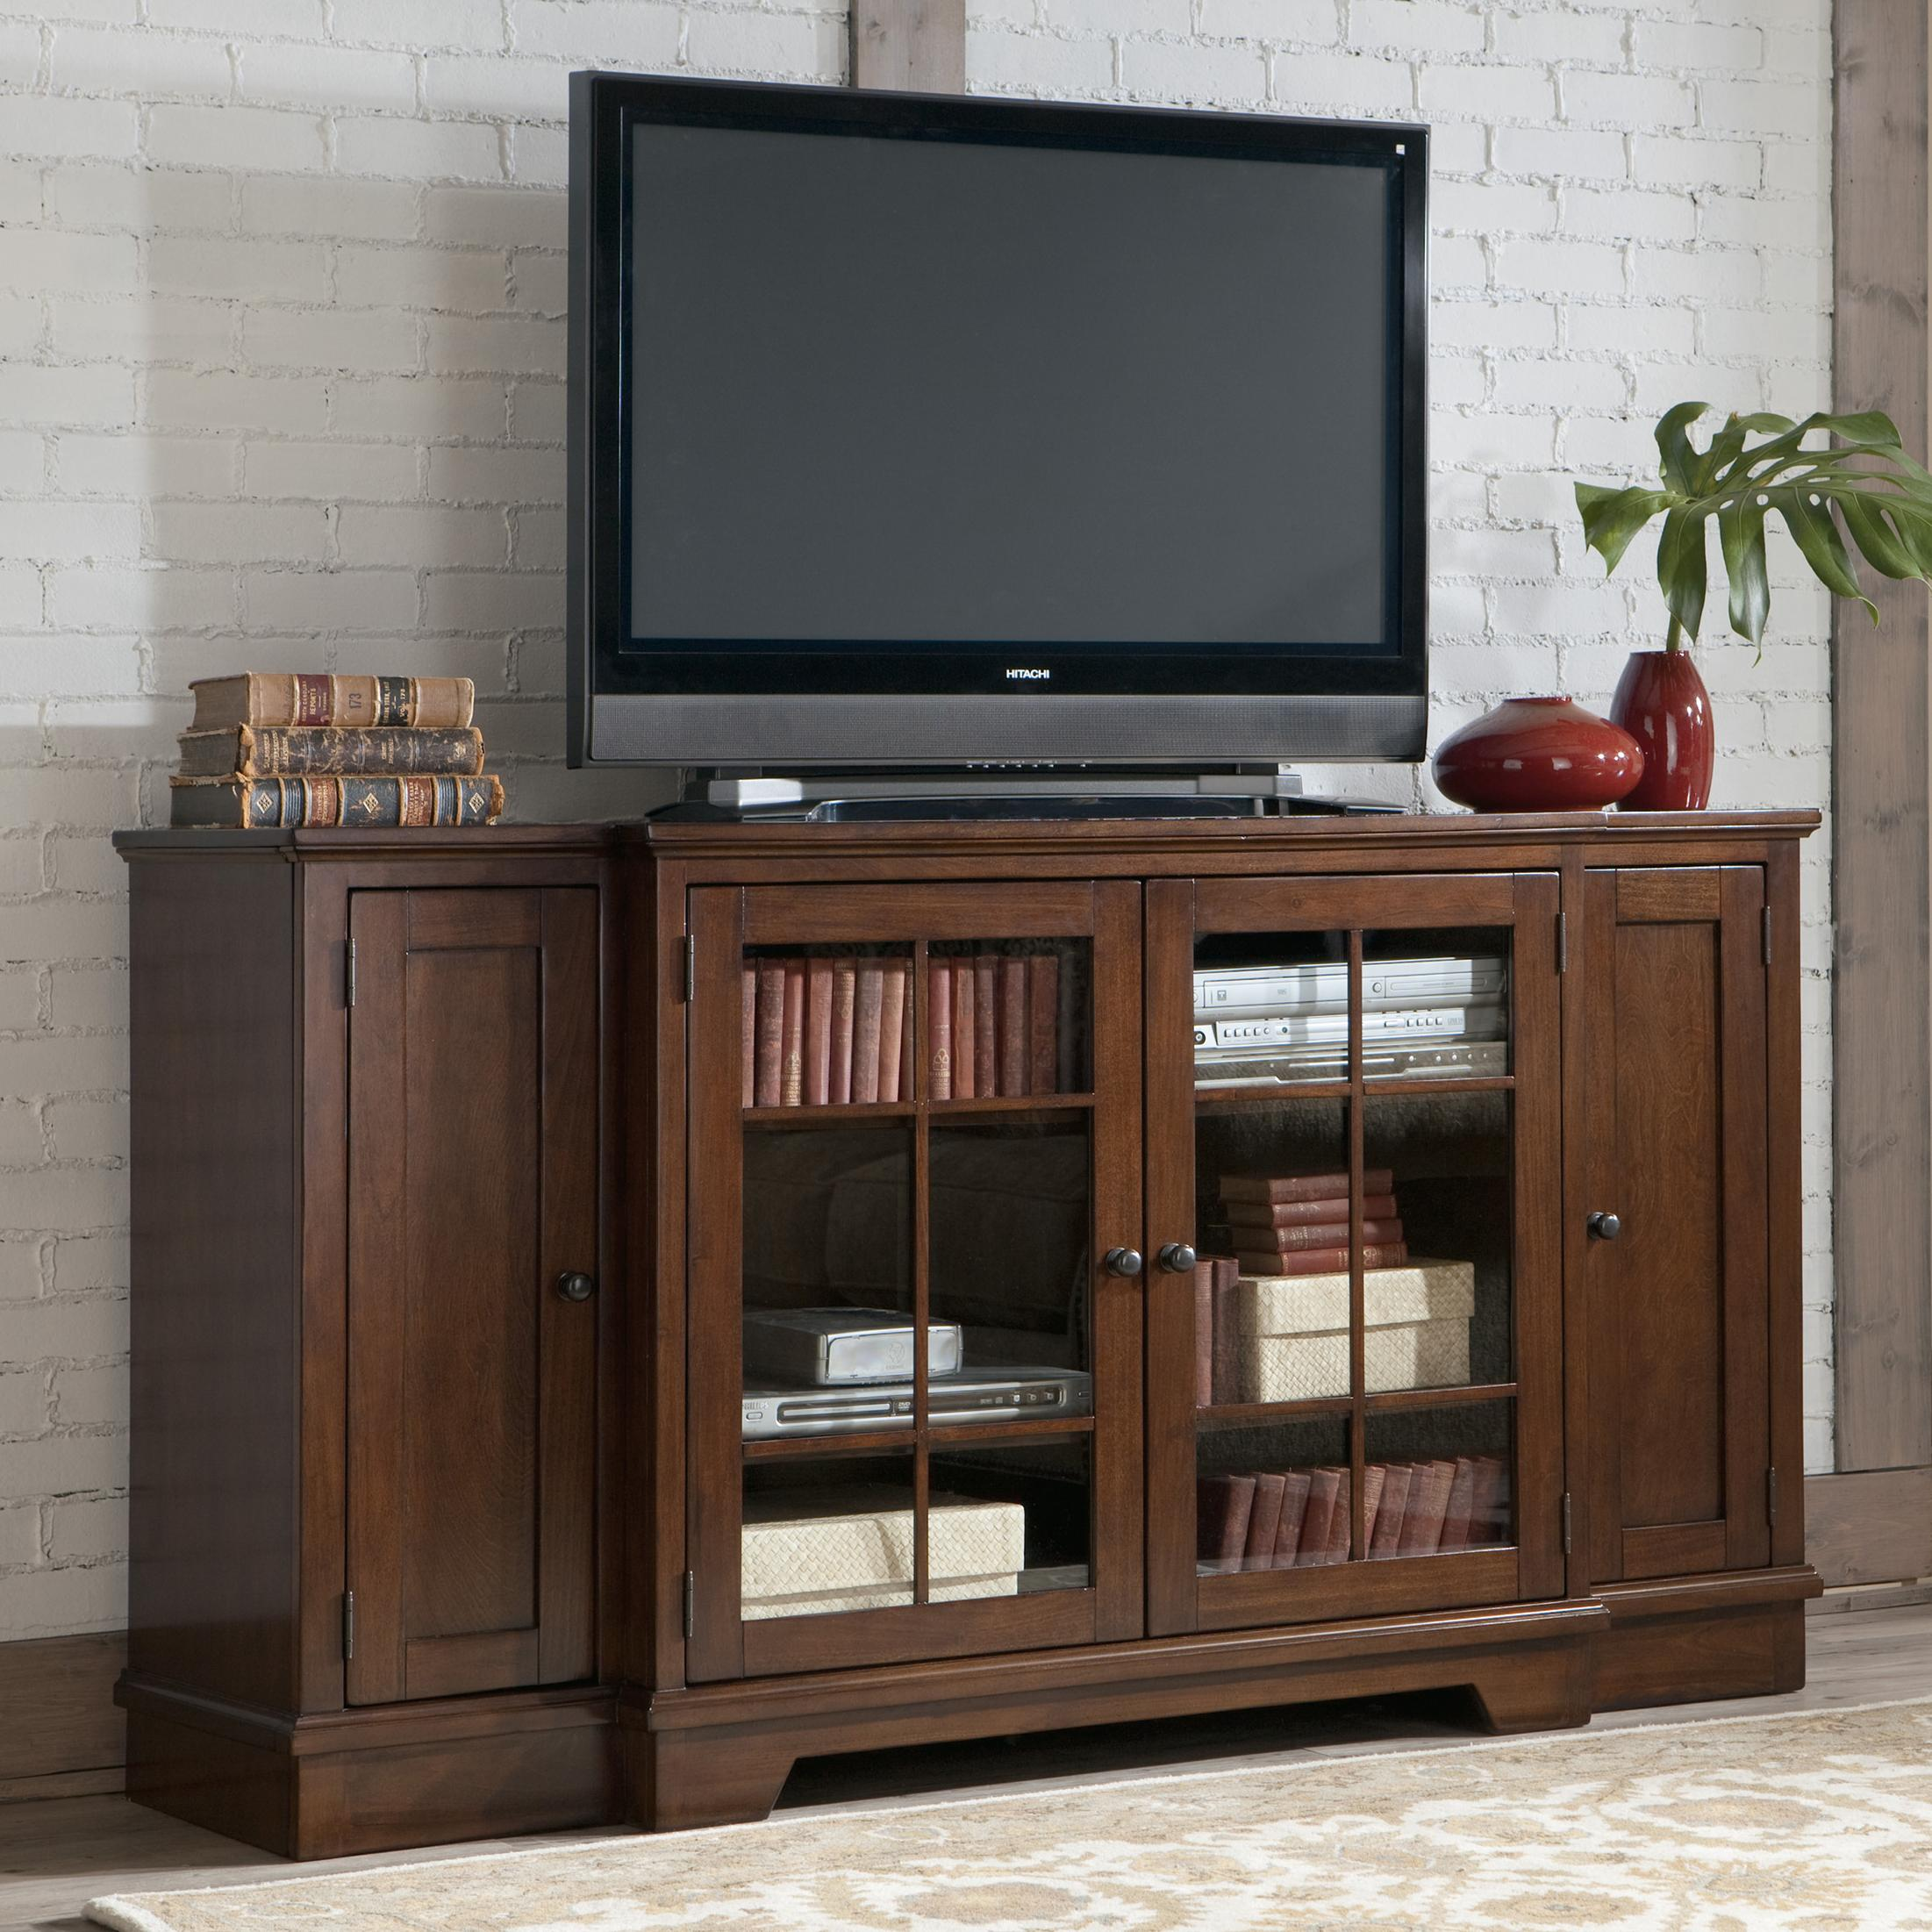 Signature Design by Ashley Hodgenville Tall Extra Large TV Stand - Item Number: W684-48